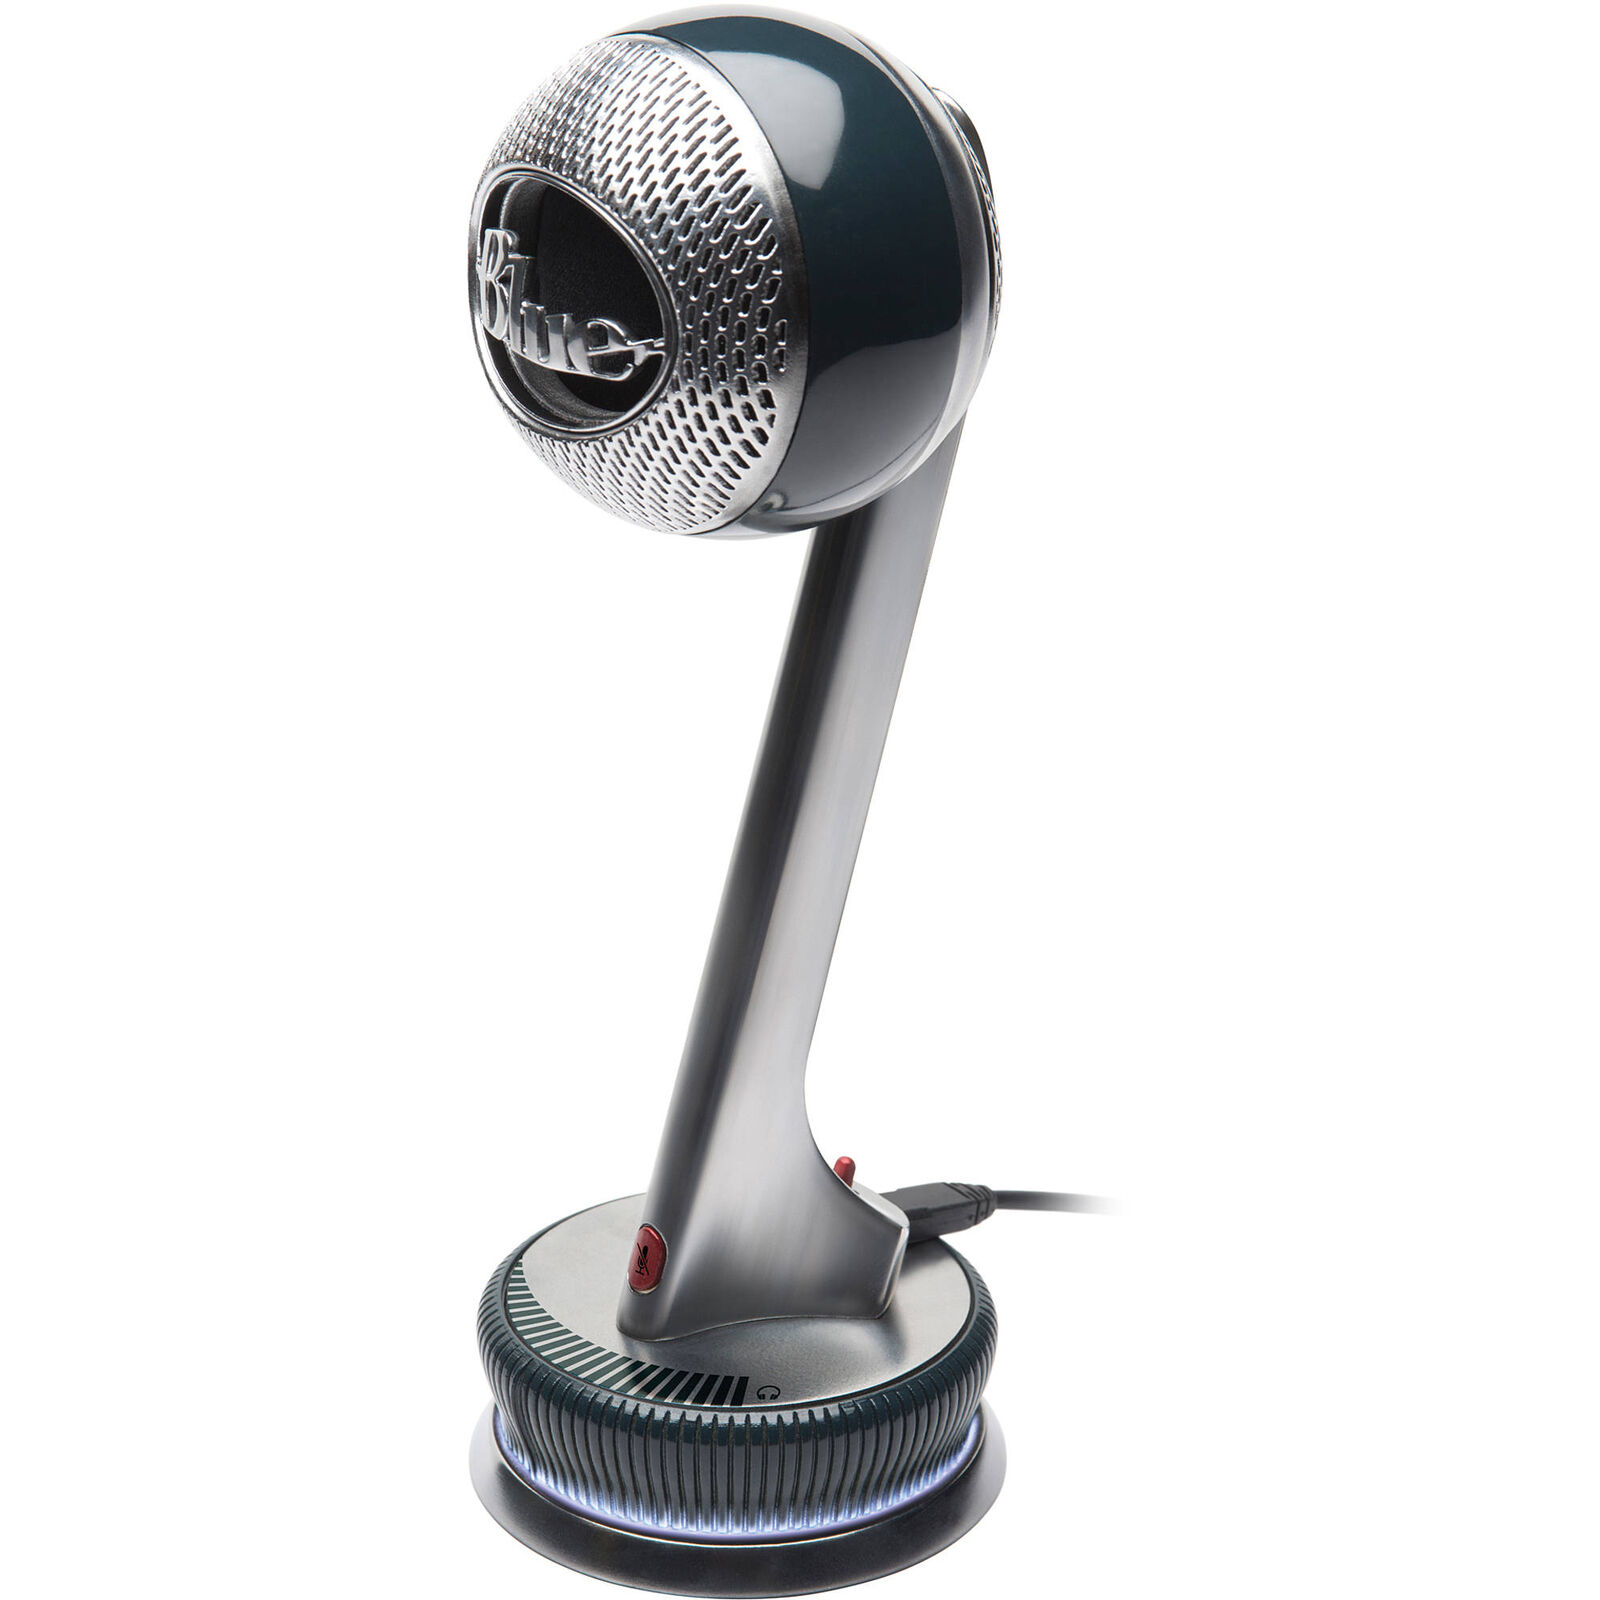 bluee Microphones NESSIE Adaptive USB Cardioid Condenser Microphone